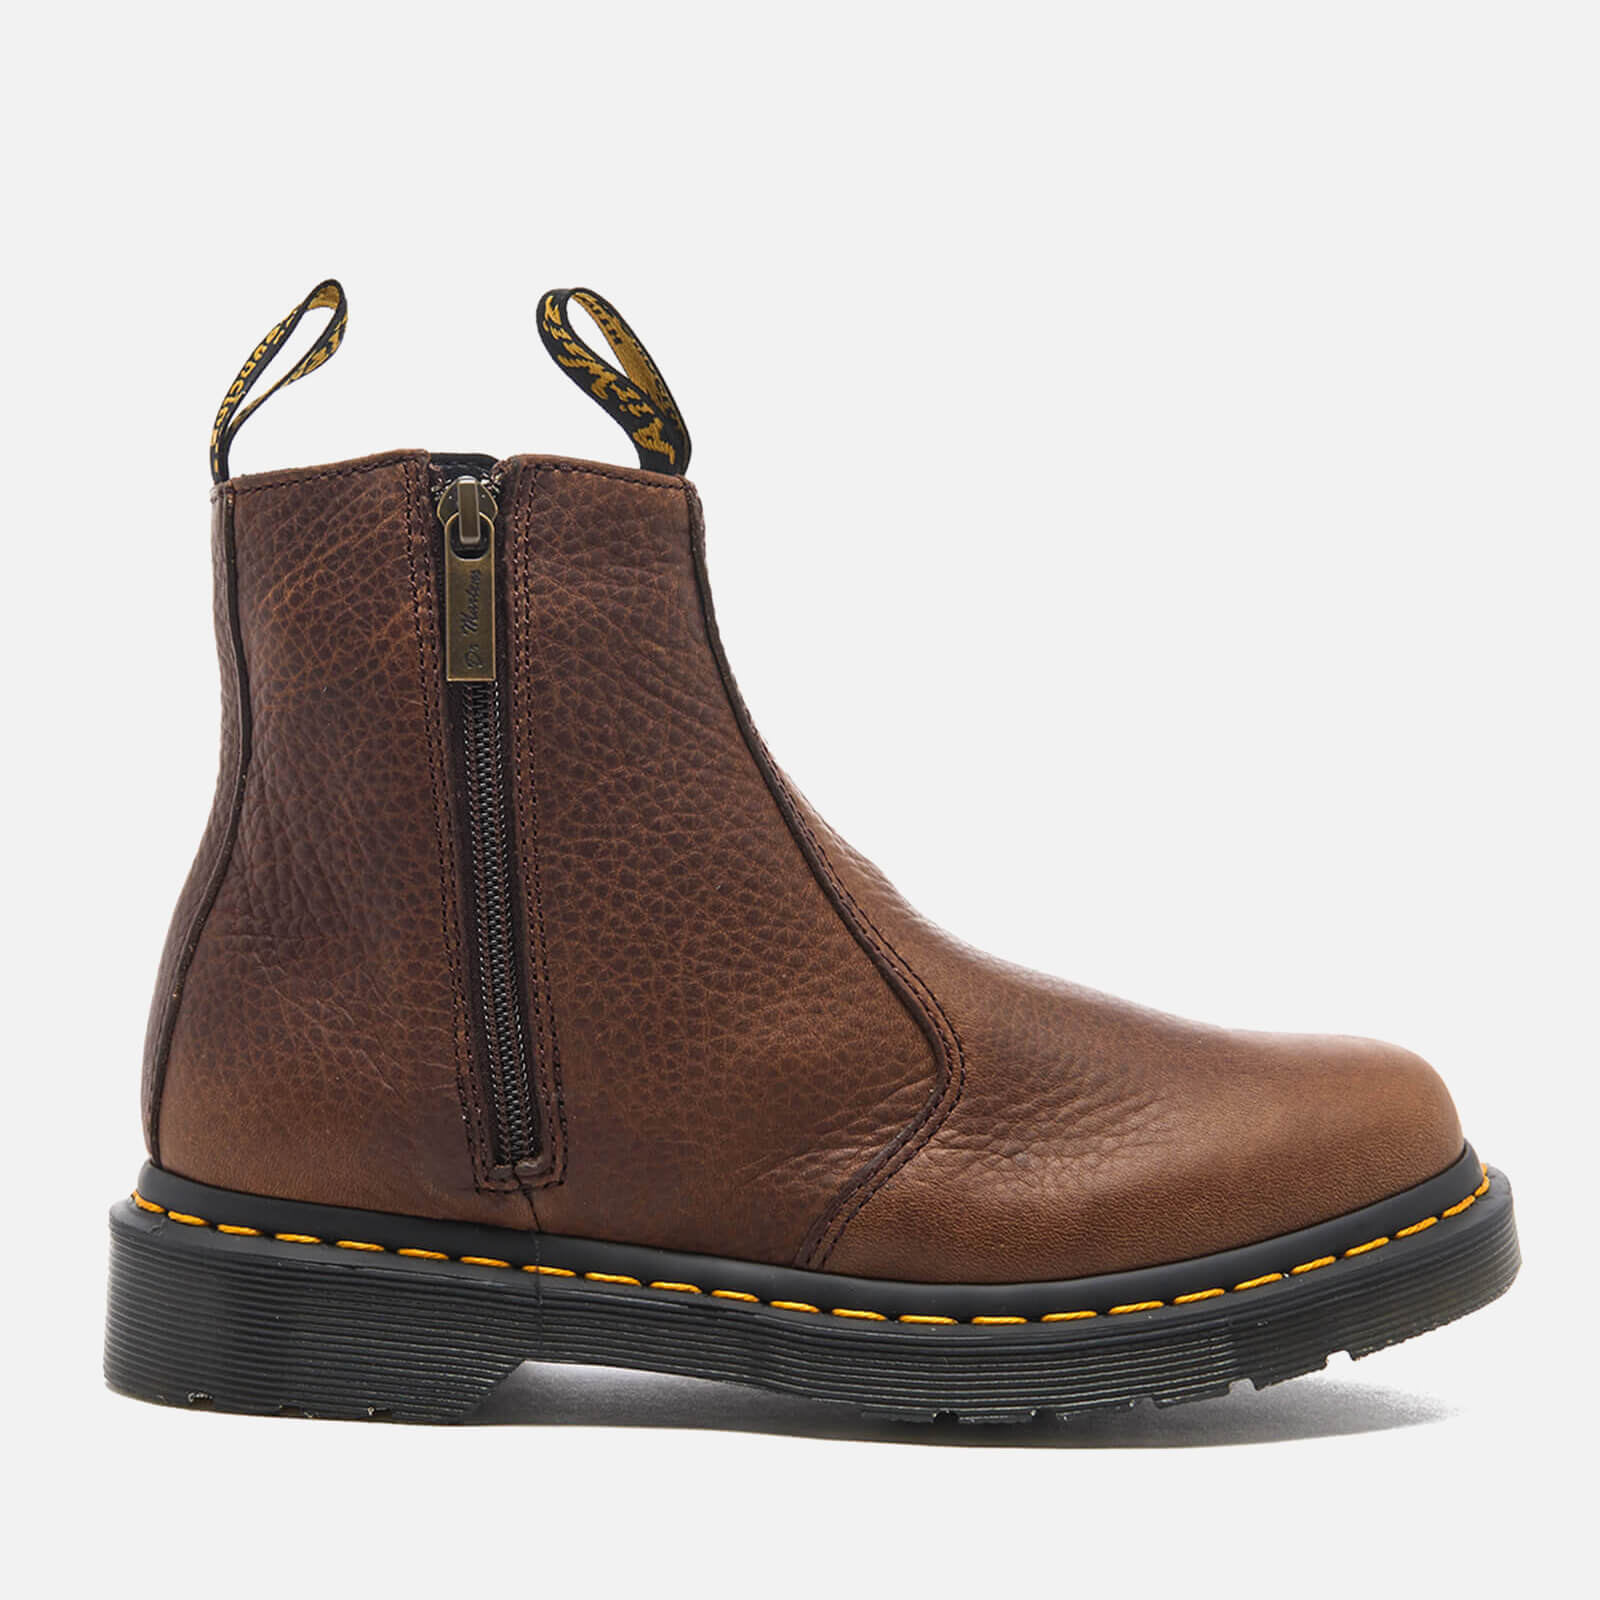 0b51b514fe Dr. Martens Women's 2976 Chelsea Boots with Zips - Dark Brown - Free UK  Delivery over £50